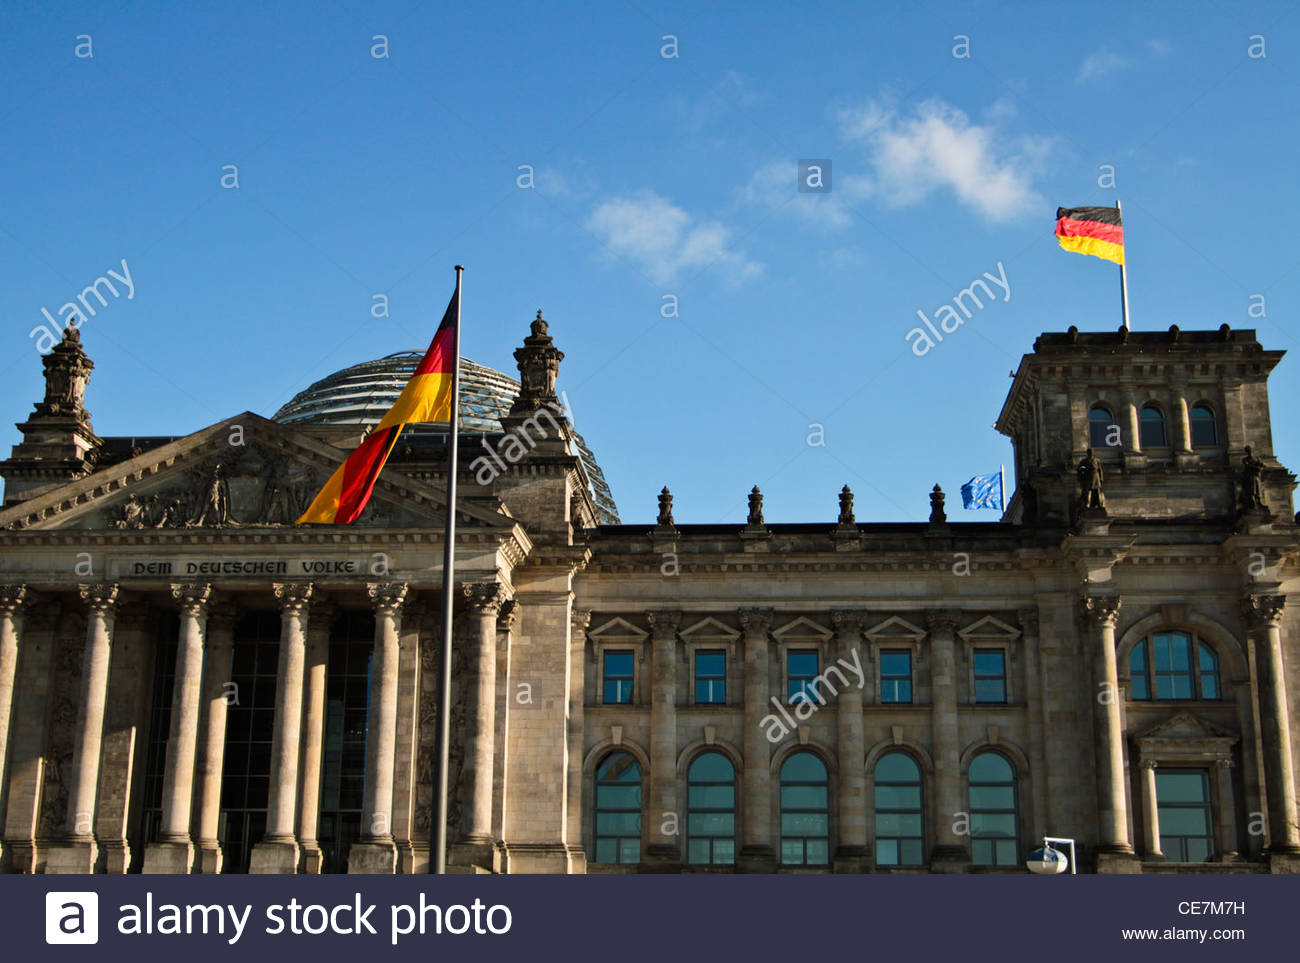 Reichstag Berlin, Germany - Stock Image